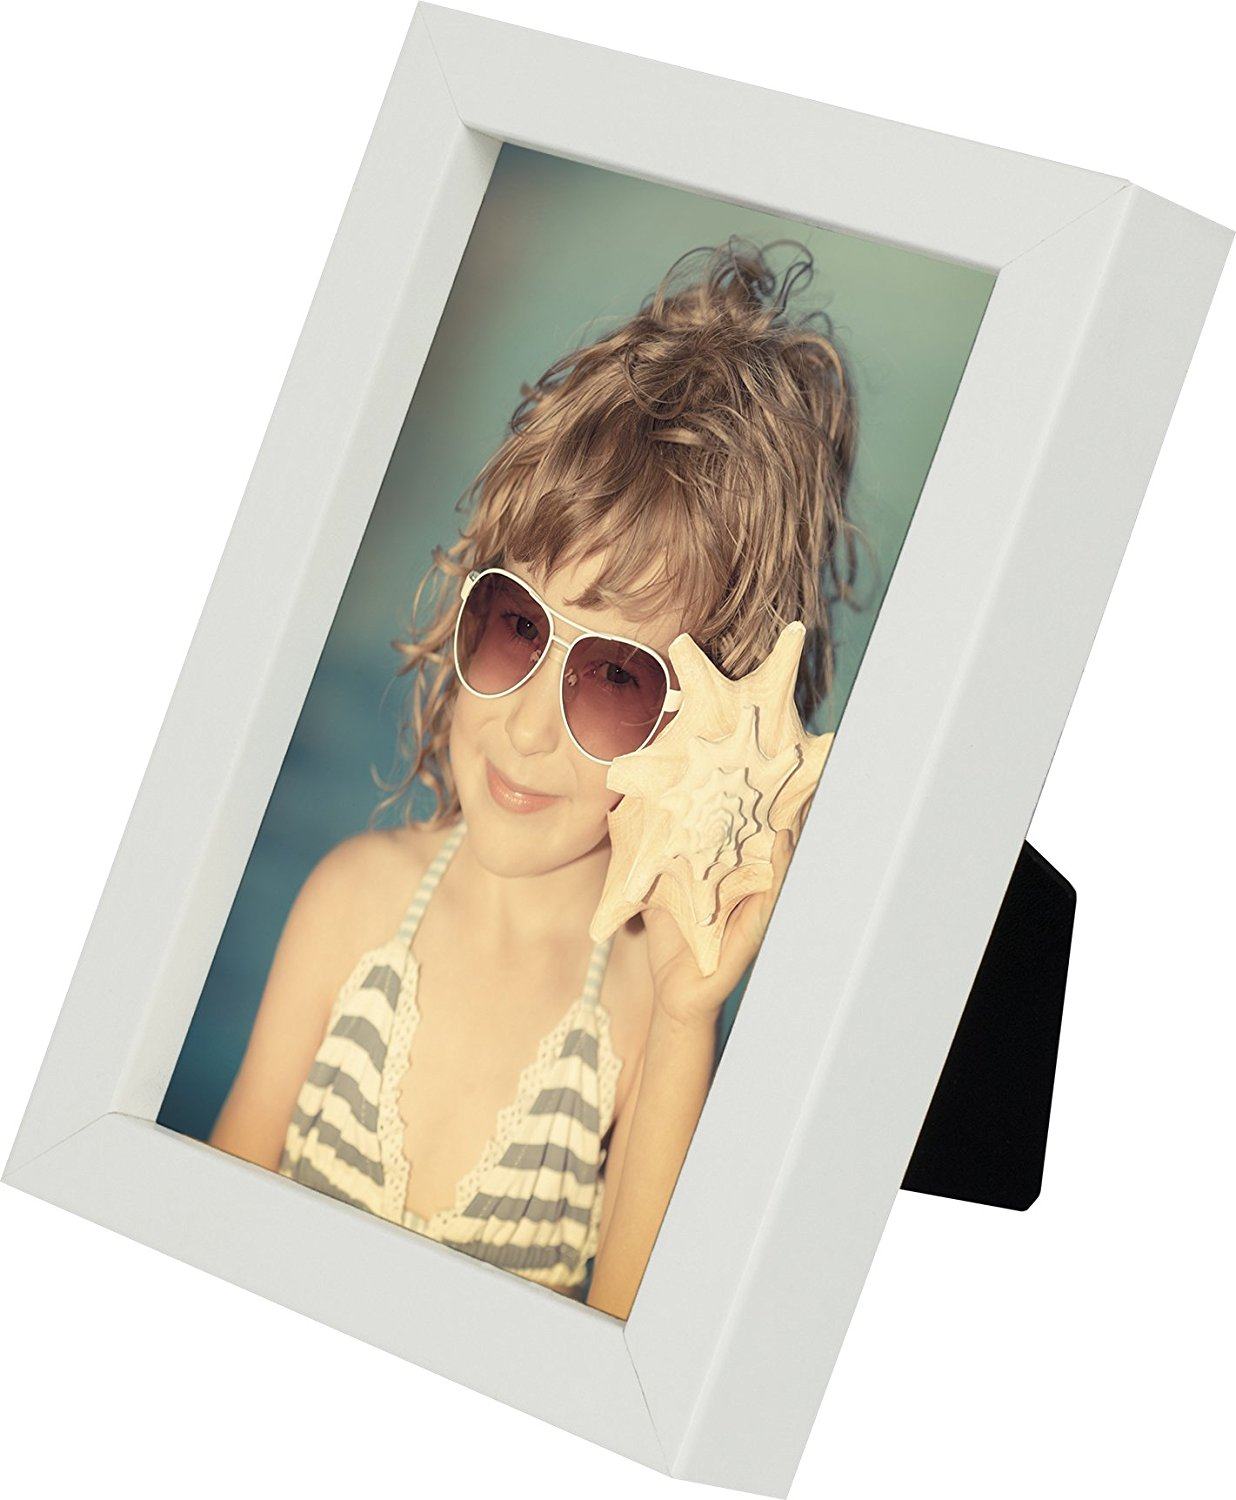 4 x 6-Inch Picture Photo Frame - 2 Pack, WHITE